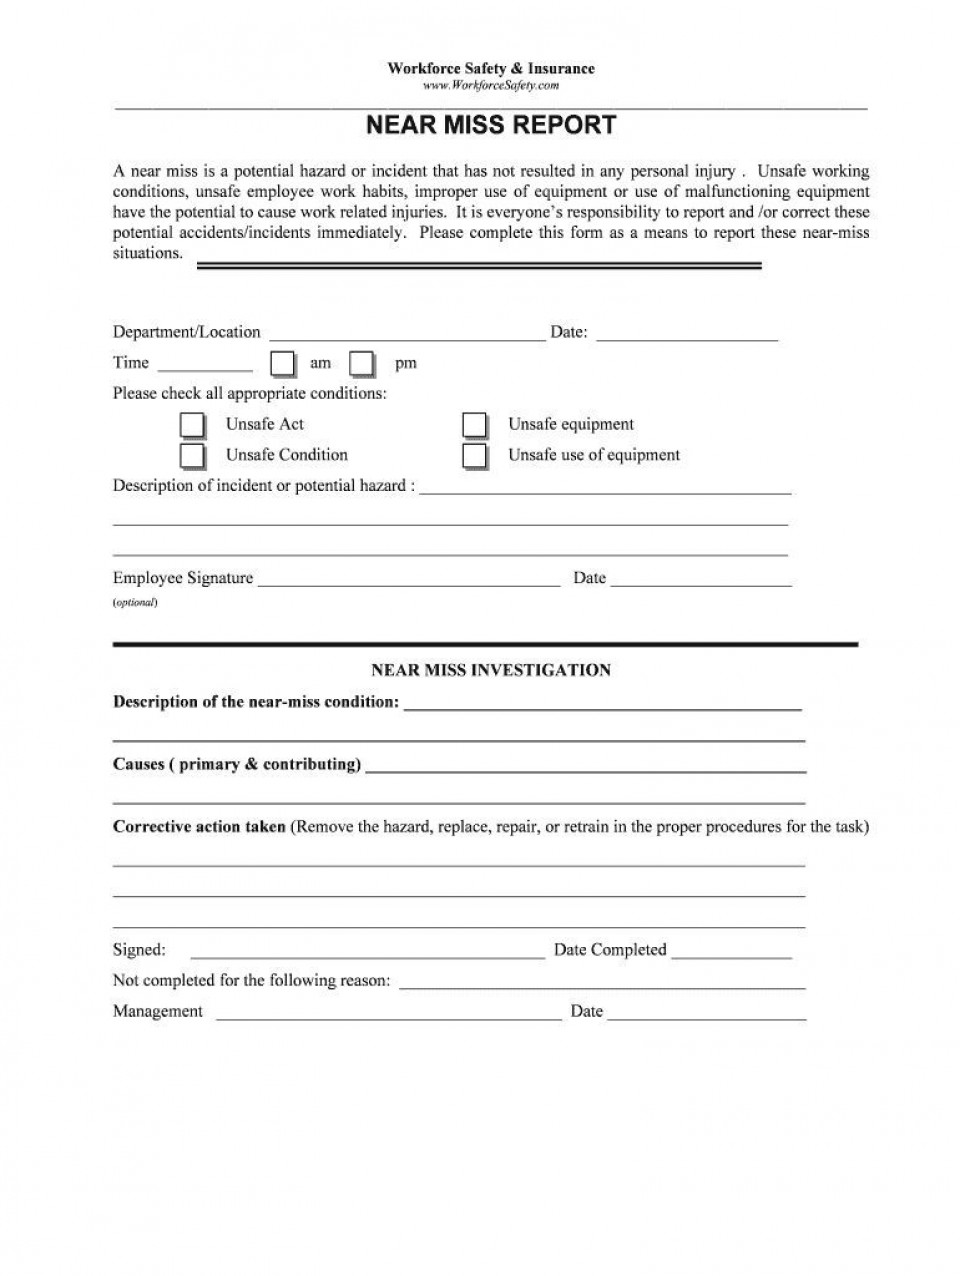 000 Frightening Workplace Incident Report Form Ontario Photo  Violence960